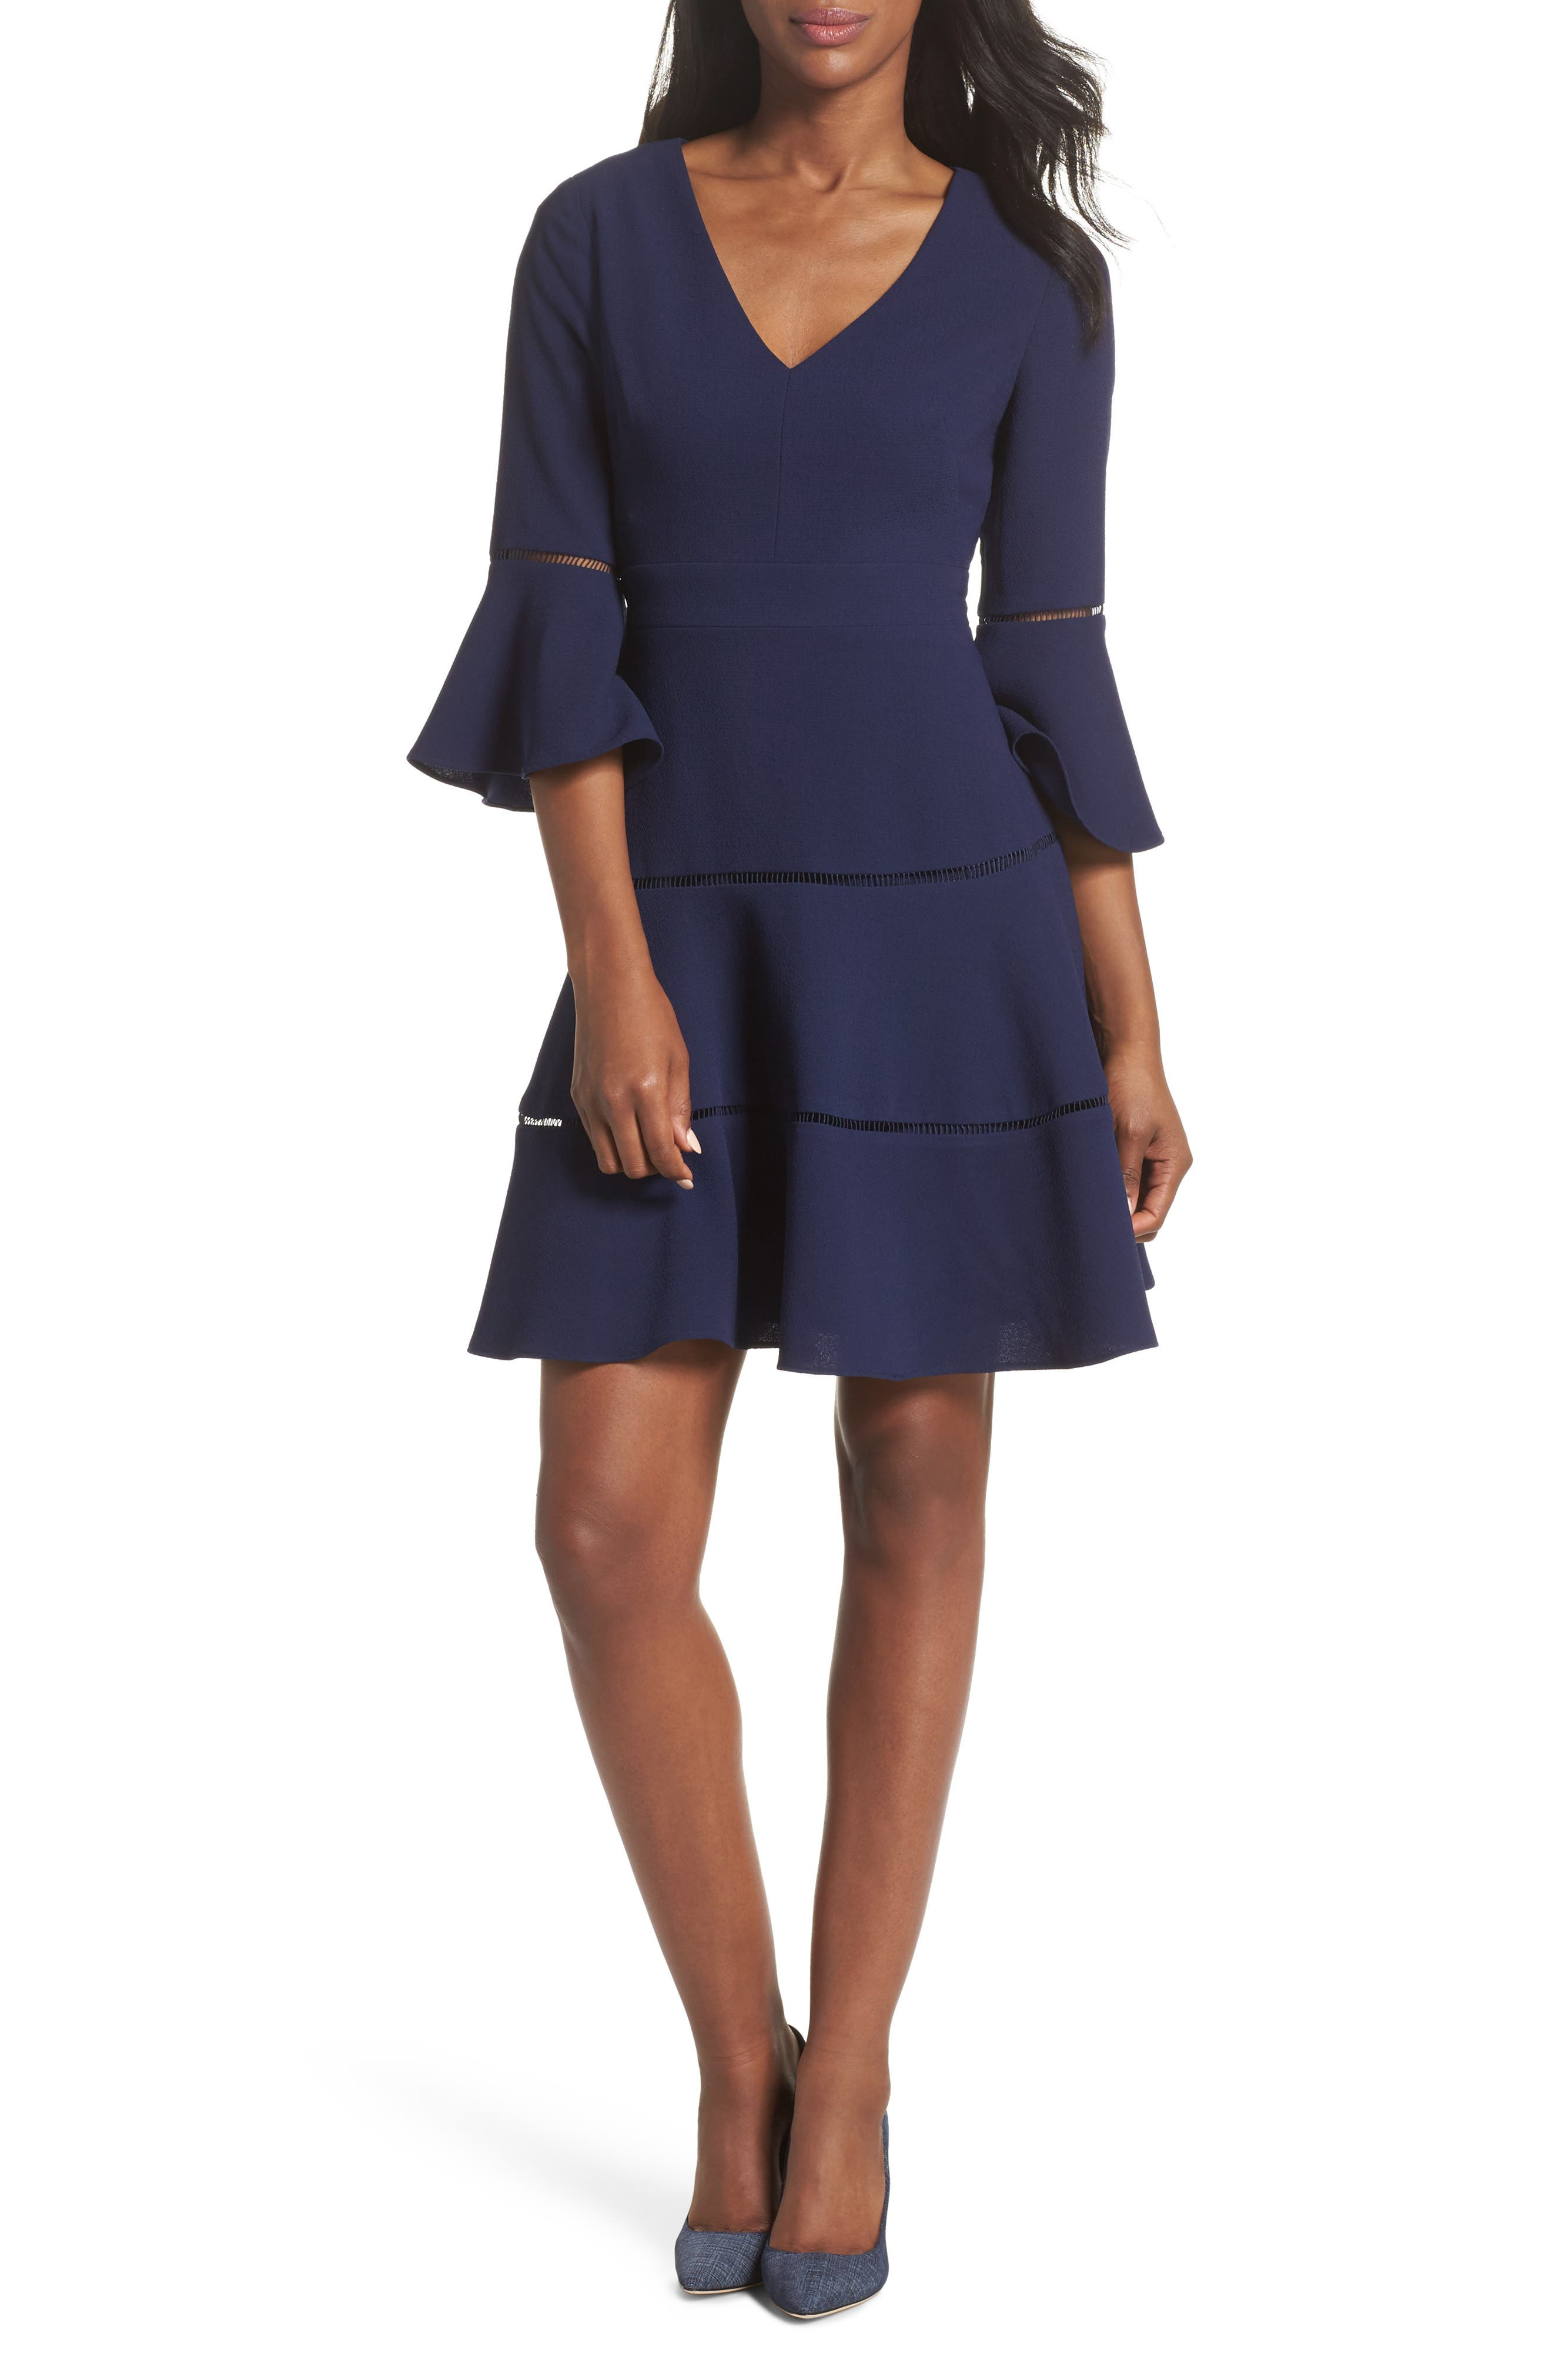 ELIZA J Bell Sleeve Lace Inset Fit & Flare Dress, Main, color, 410